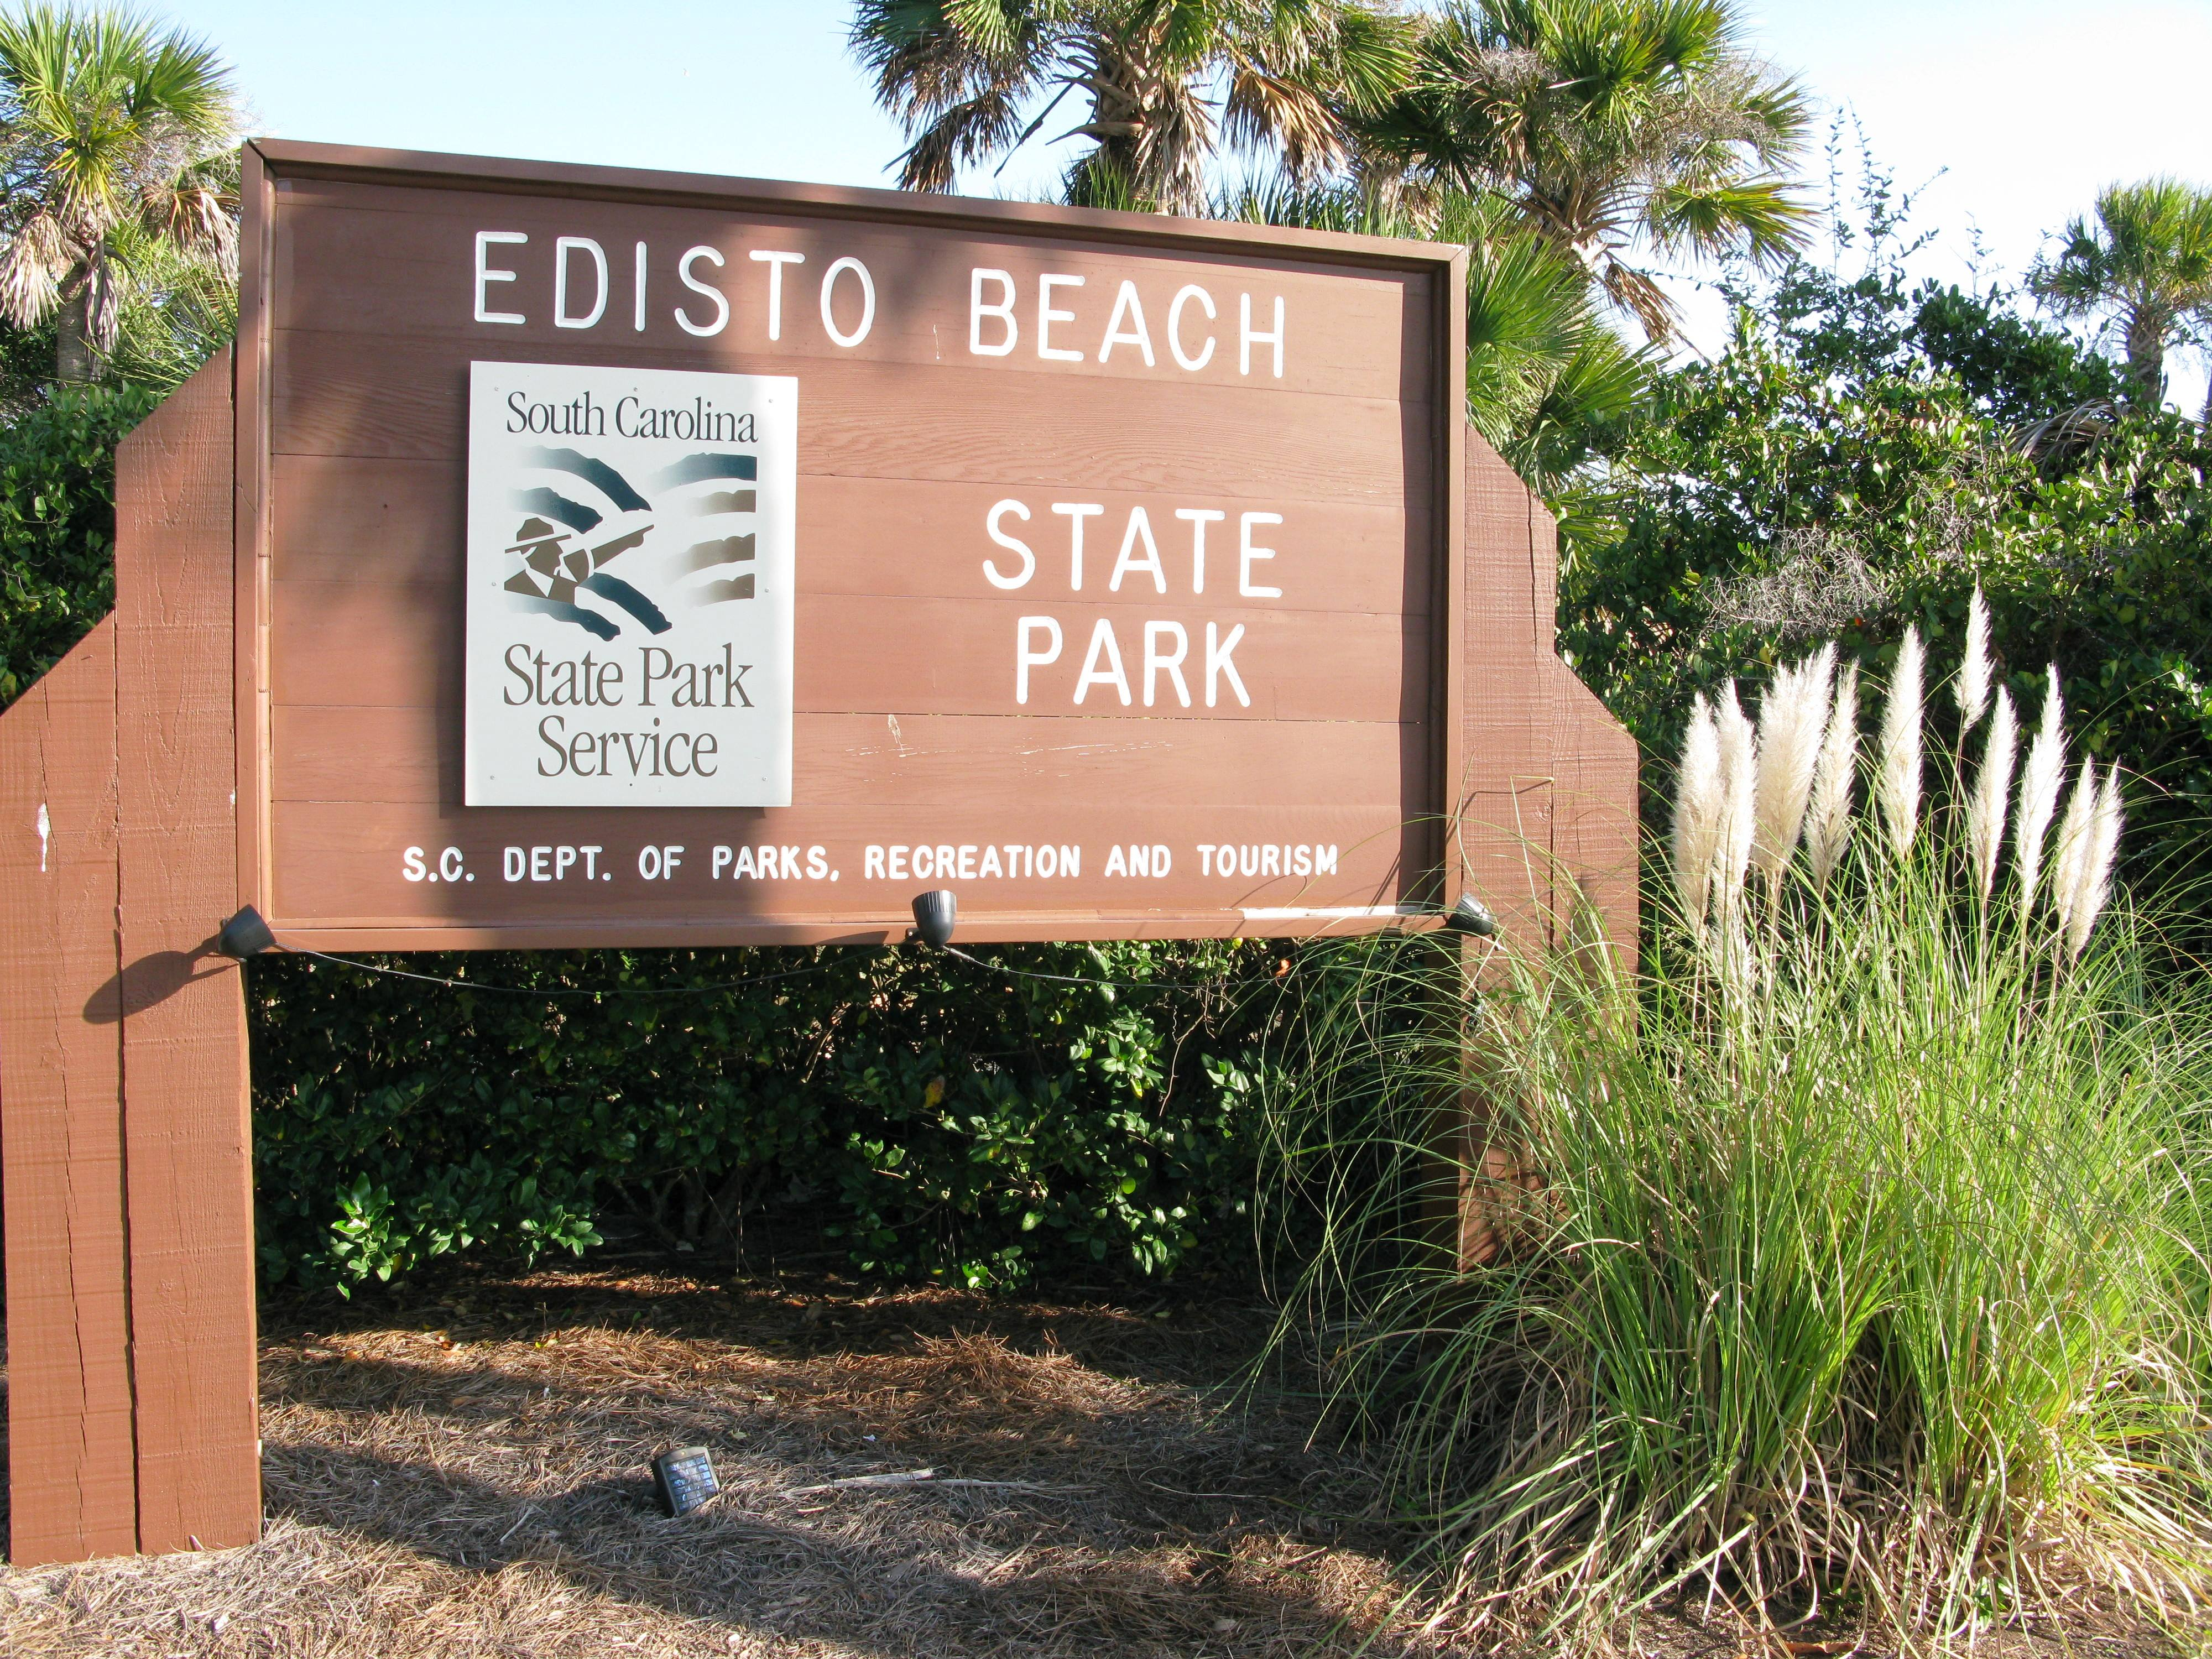 buddhist single men in edisto island Finally, a place for single buddhists to connect with like-minded people & find a  long-lasting relationship start buddhist dating with elitesingles today.